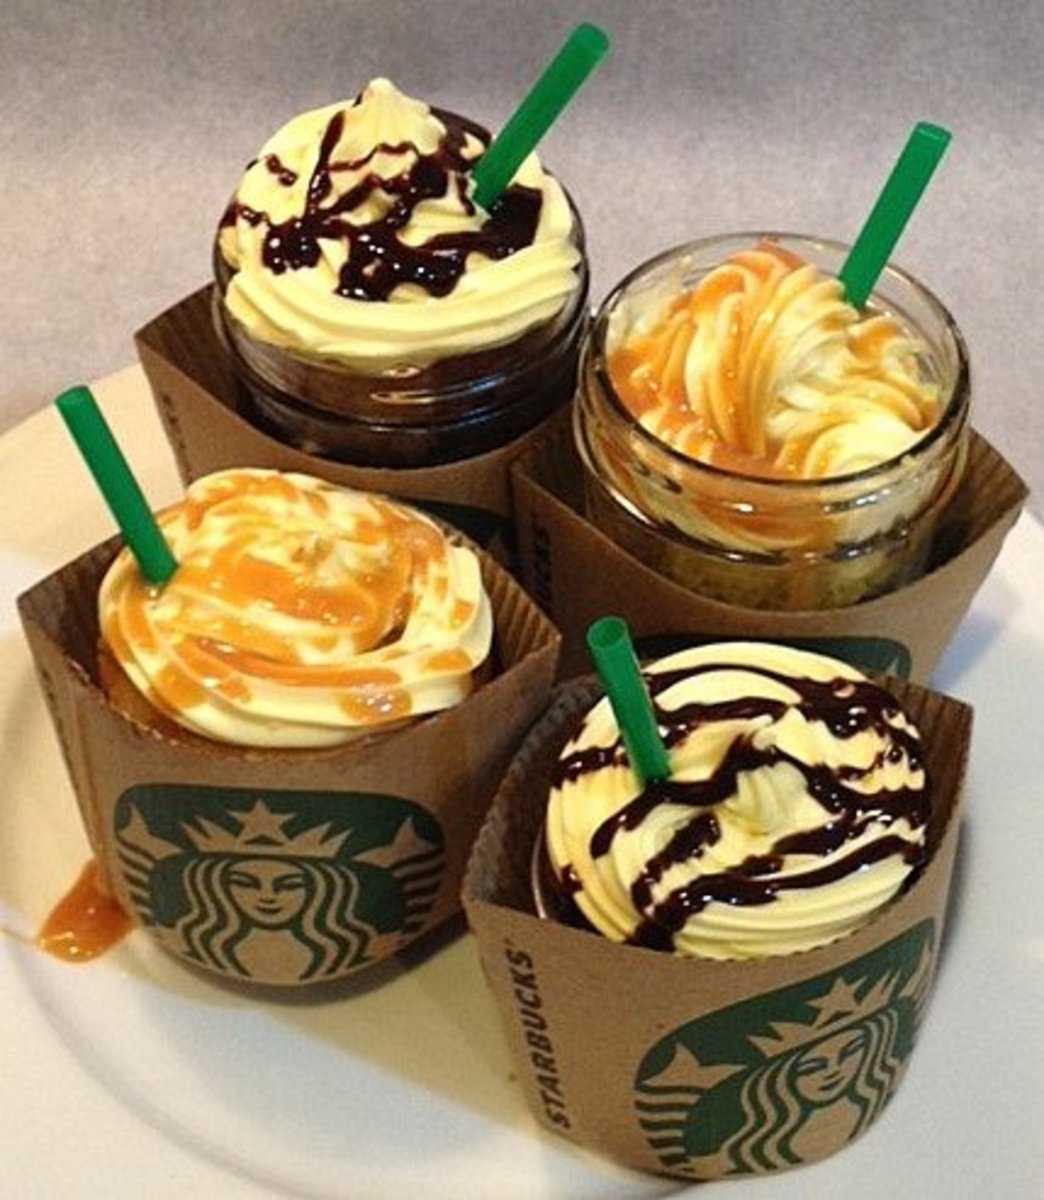 Starbucks Creme Frappuccinos